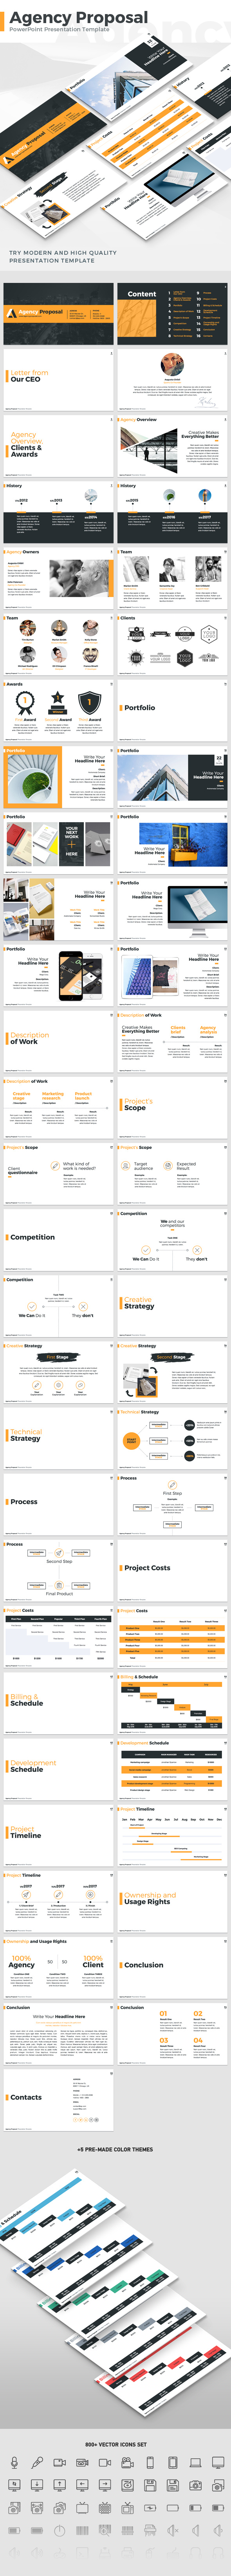 Agency Proposal - PowerPoint Template - PowerPoint Templates Presentation Templates